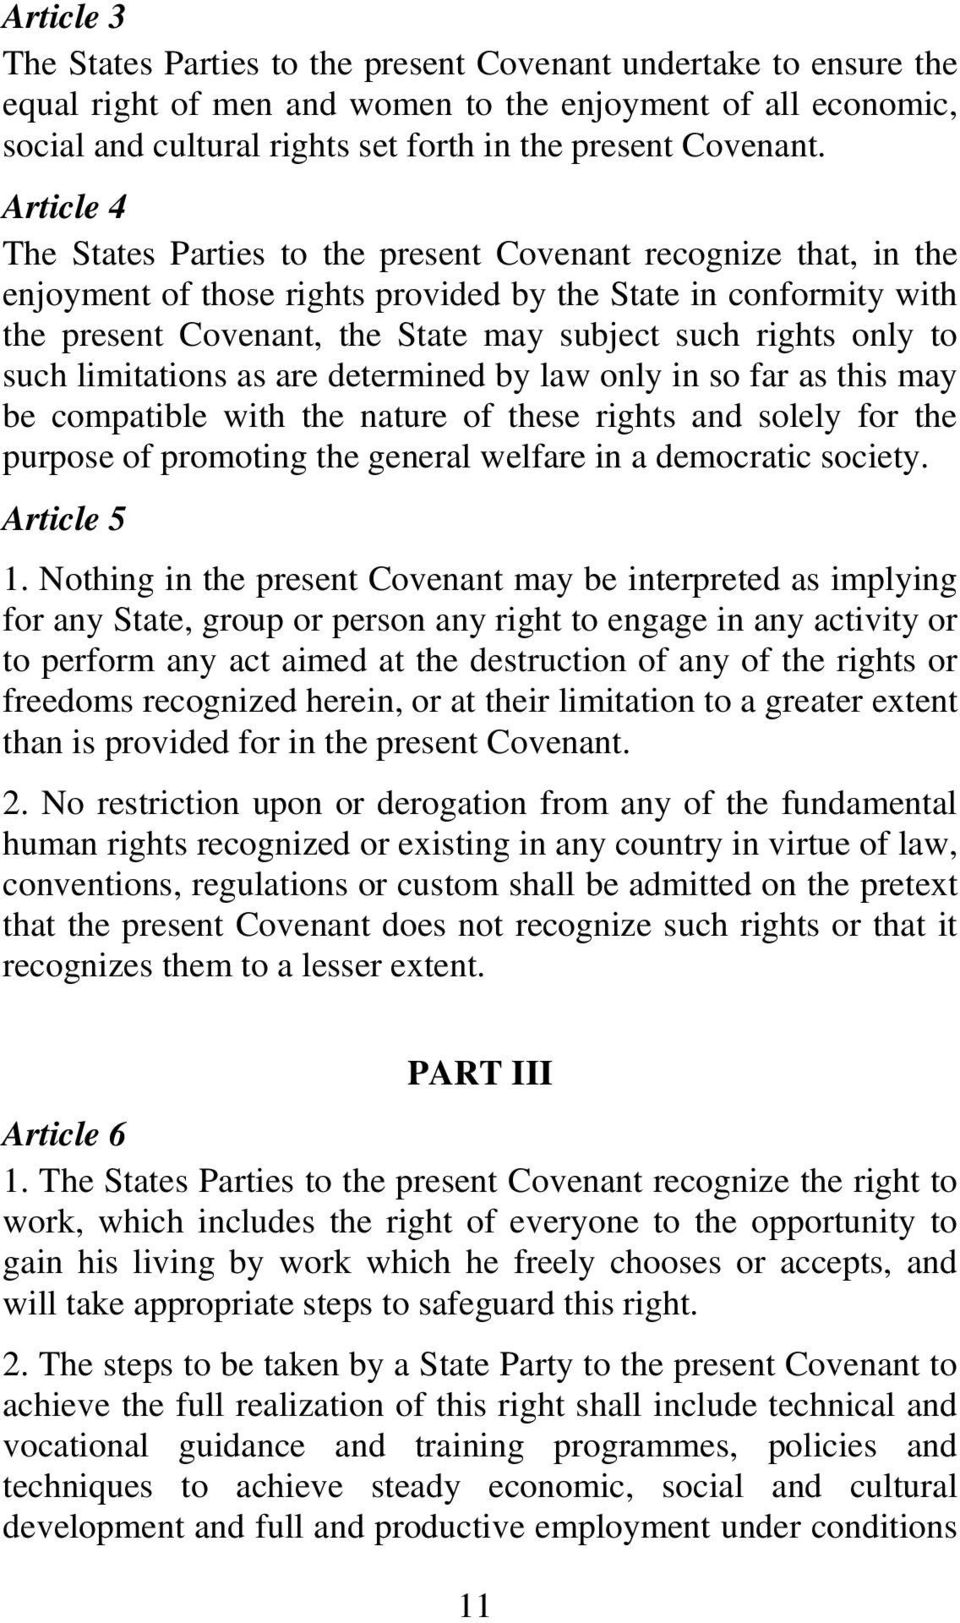 Article 4 The States Parties to the present Covenant recognize that, in the enjoyment of those rights provided by the State in conformity with the present Covenant, the State may subject such rights